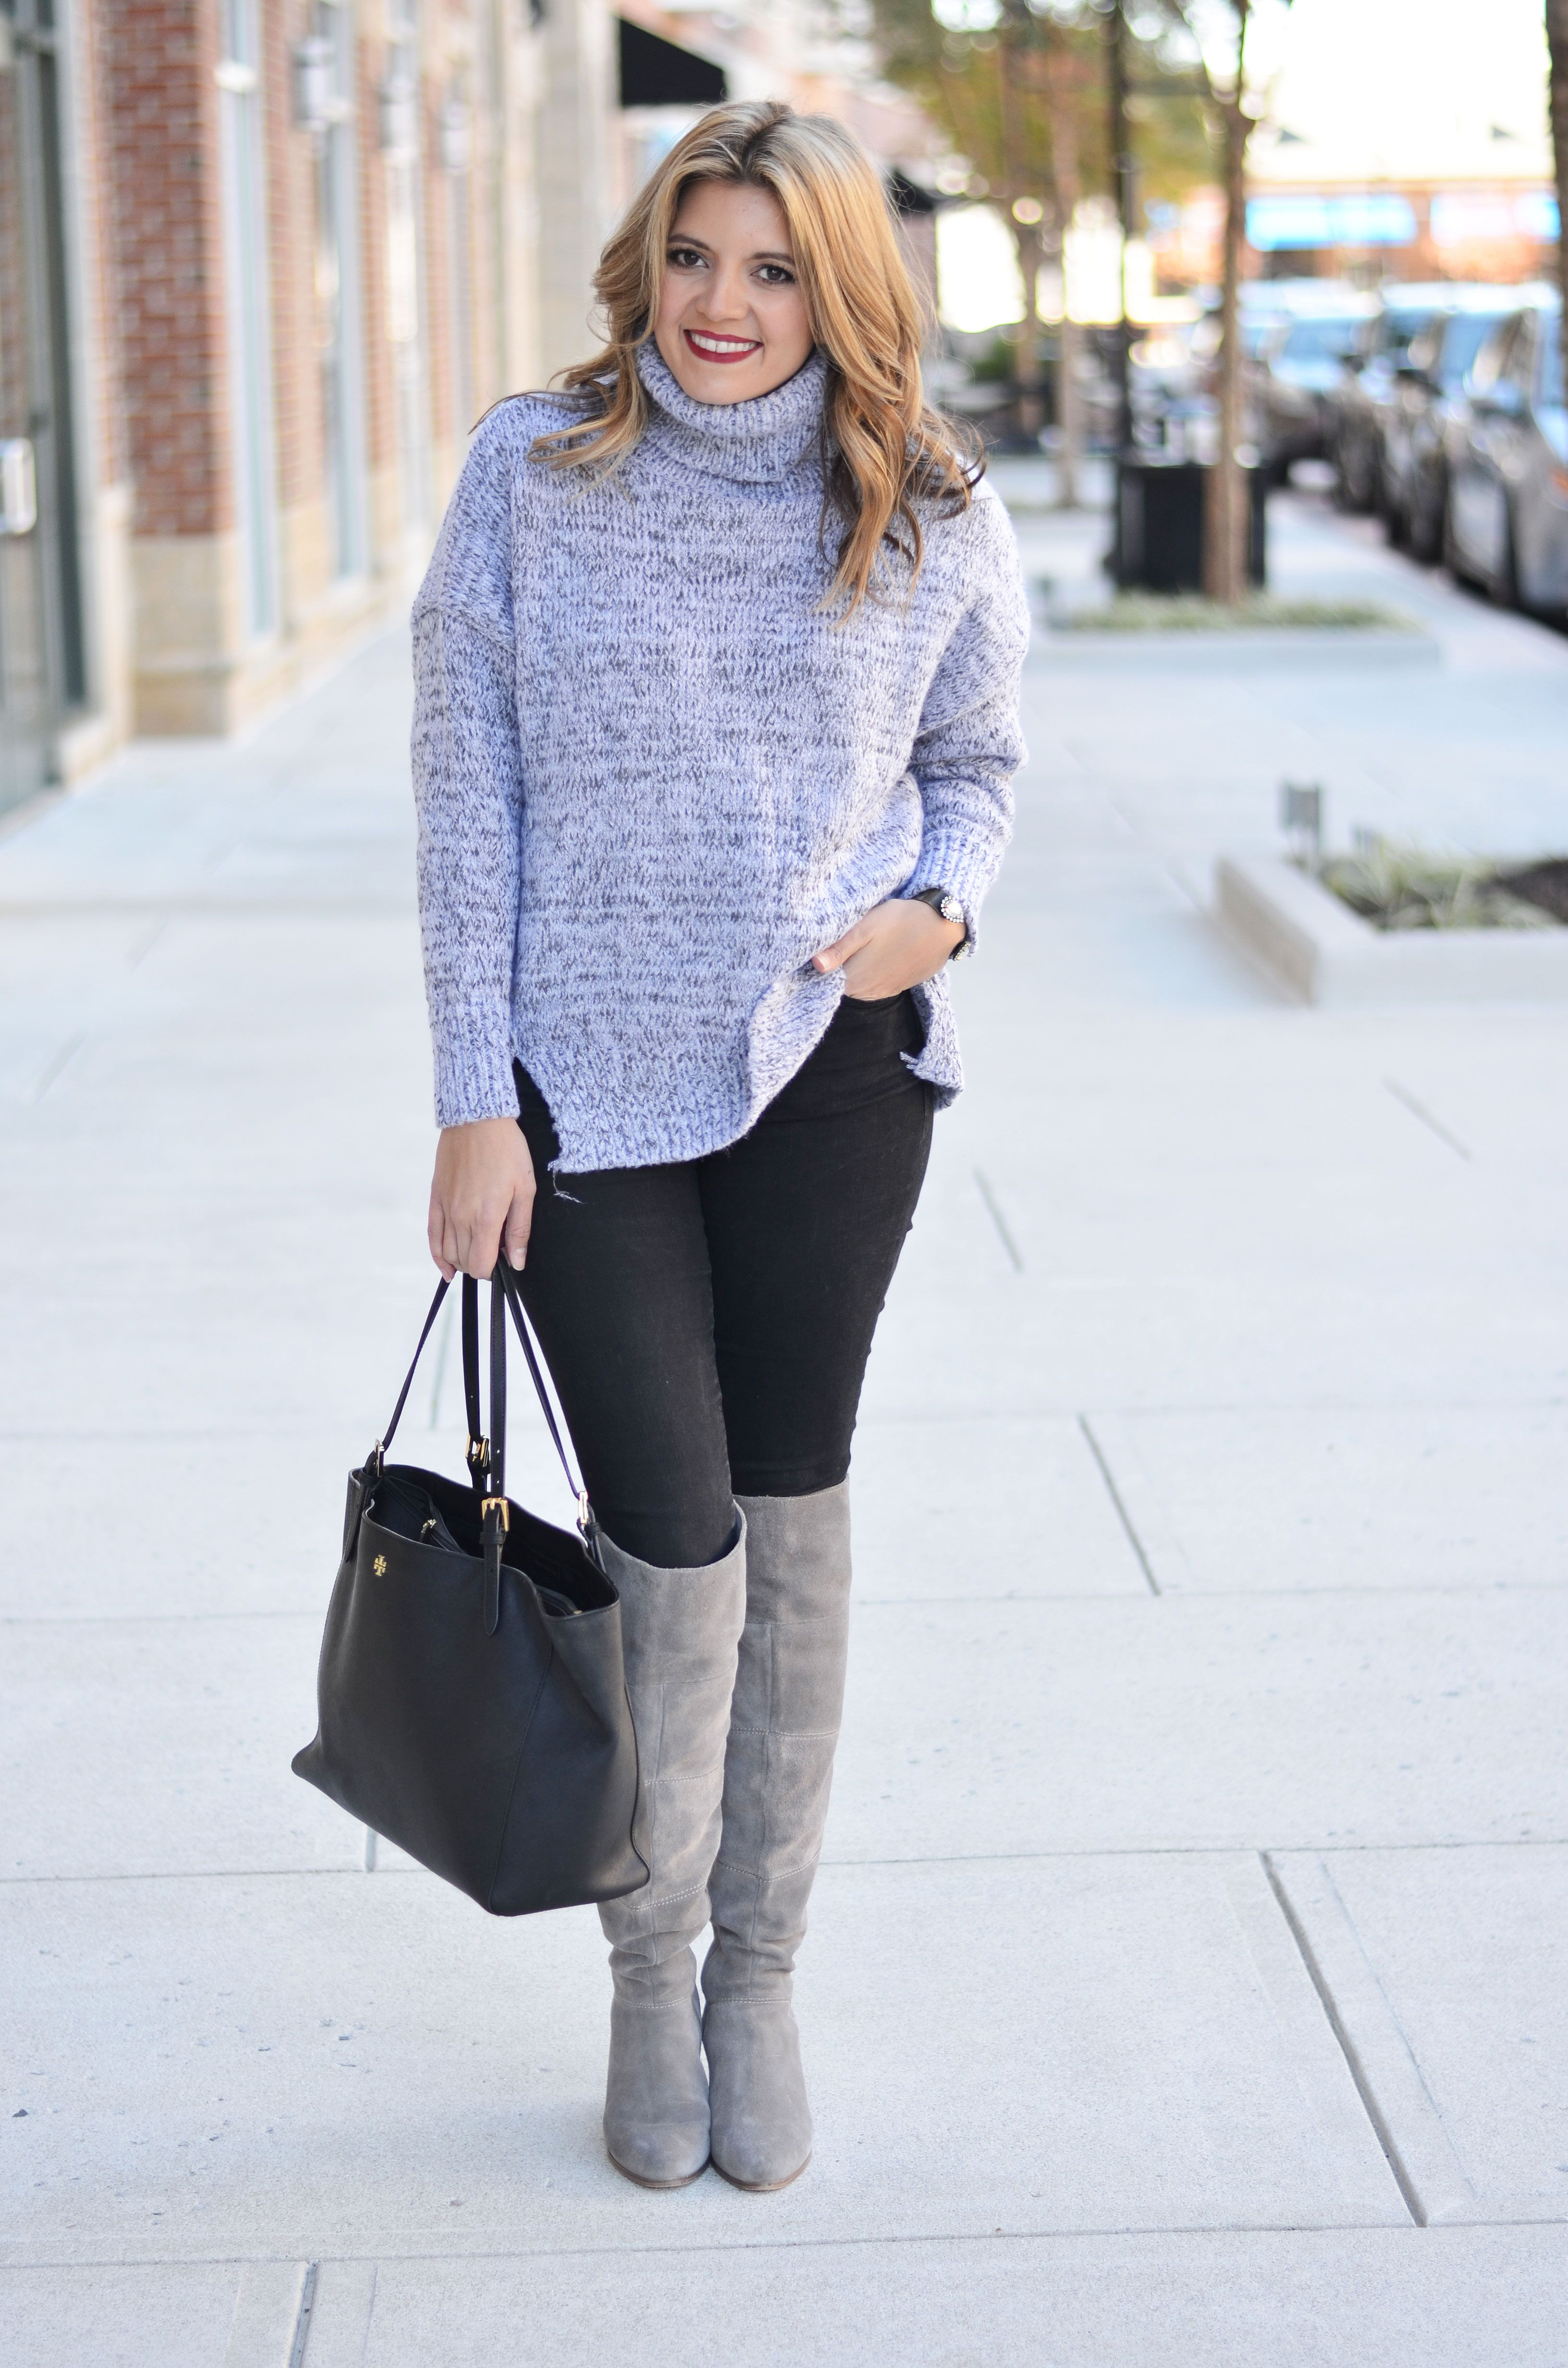 53d30157e27 oversized sweater outfit - gray oversized turtleneck with black skinny  jeans and gray over the knee boots